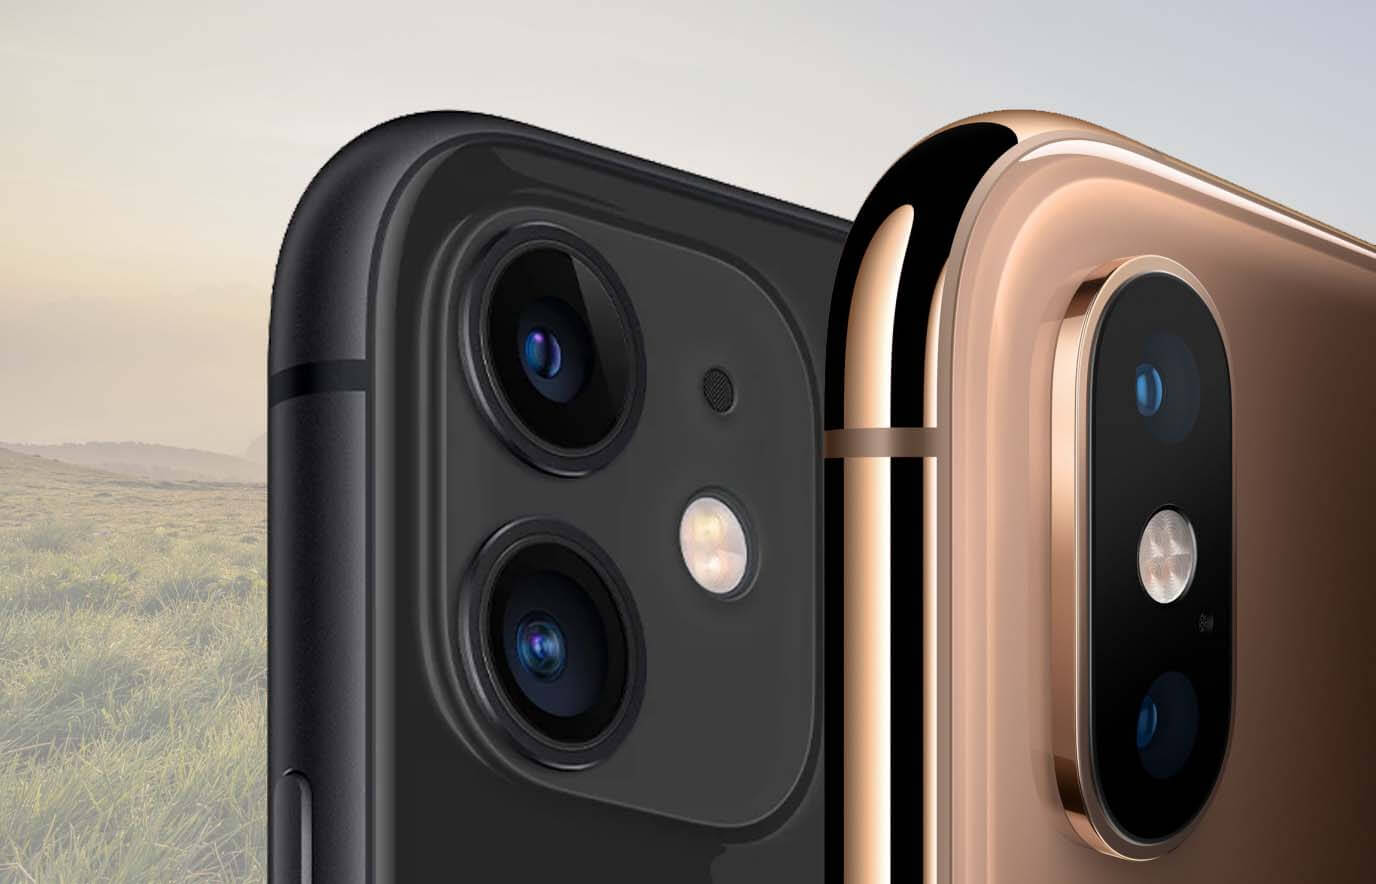 Camera iPhone XS vs 11, wat is het verschil?